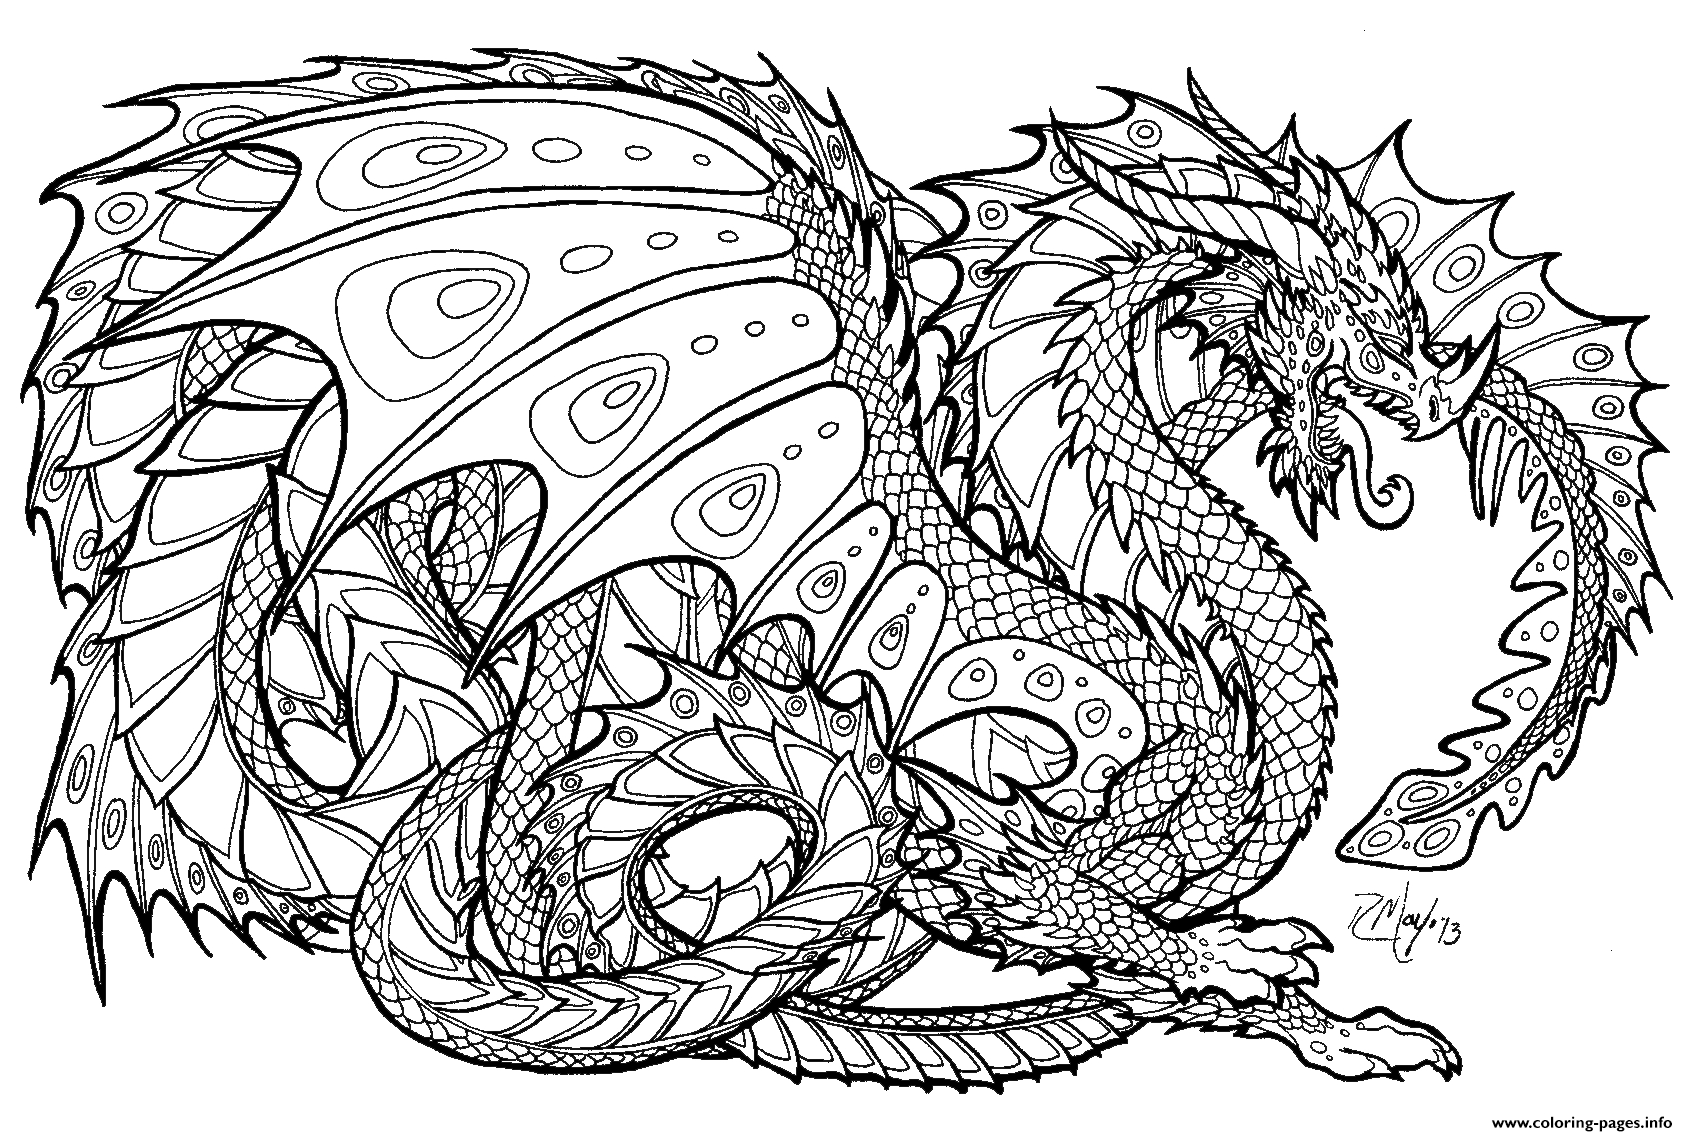 chinese dragon coloring page chinese dragon painting coloring pages netart chinese chinese coloring dragon page